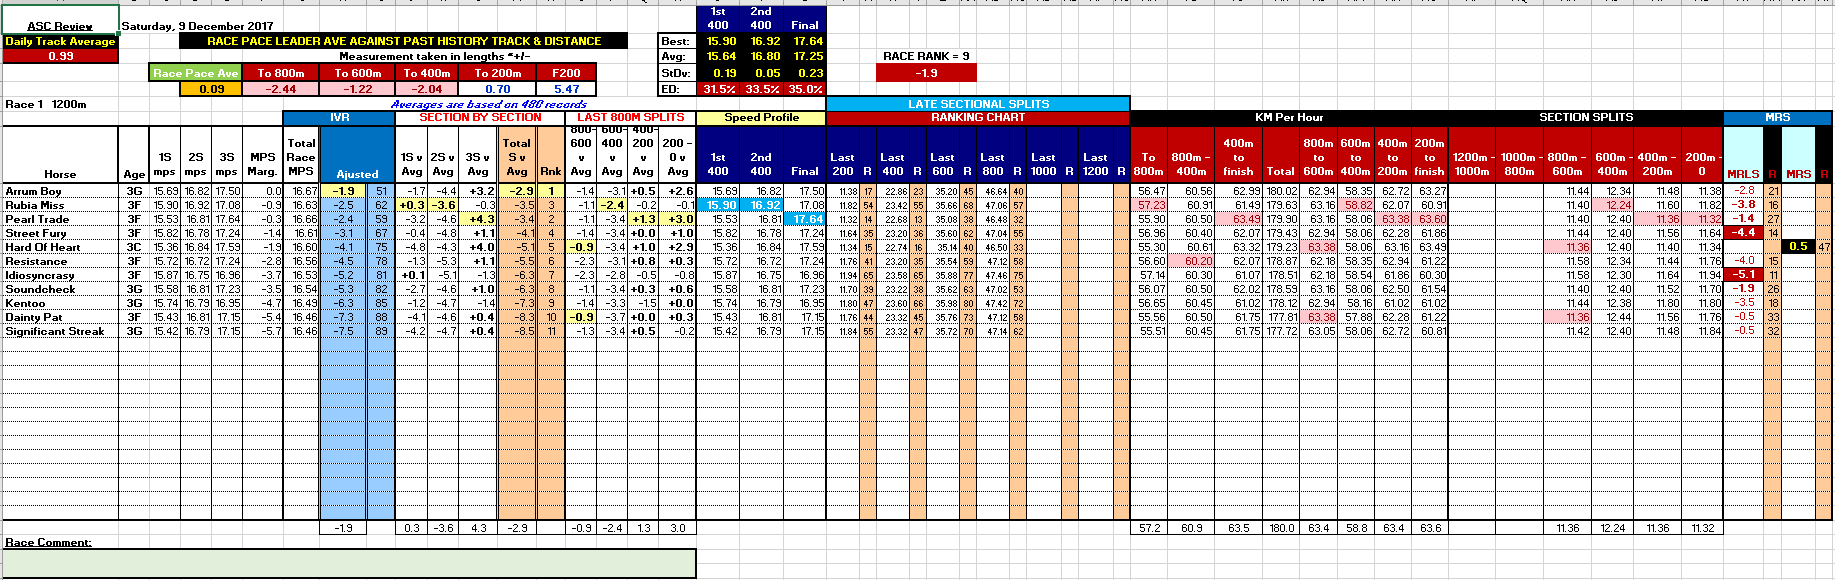 horse racing form guide in excel format